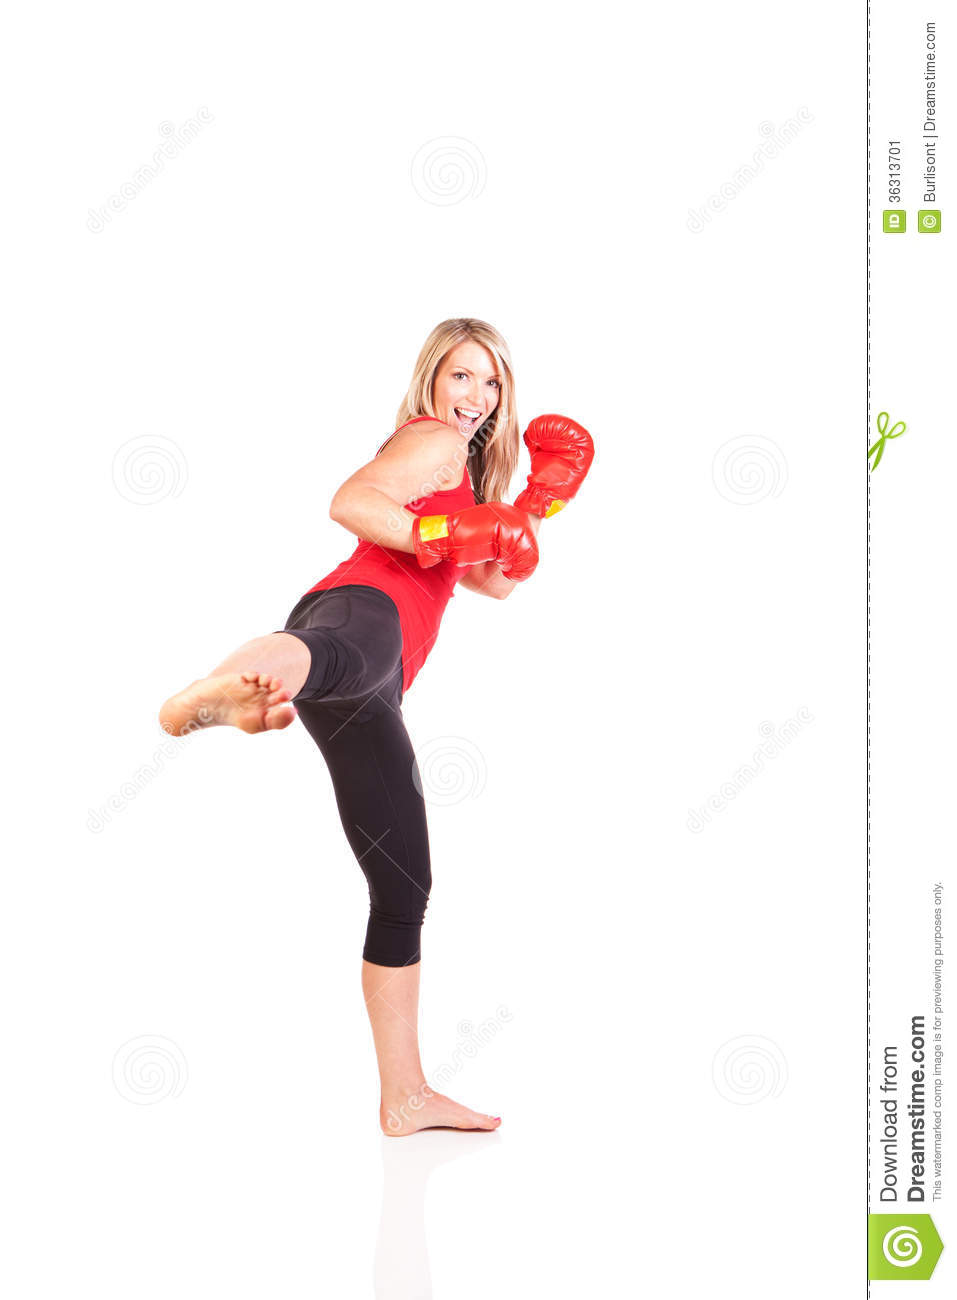 how to wear kickboxing gloves